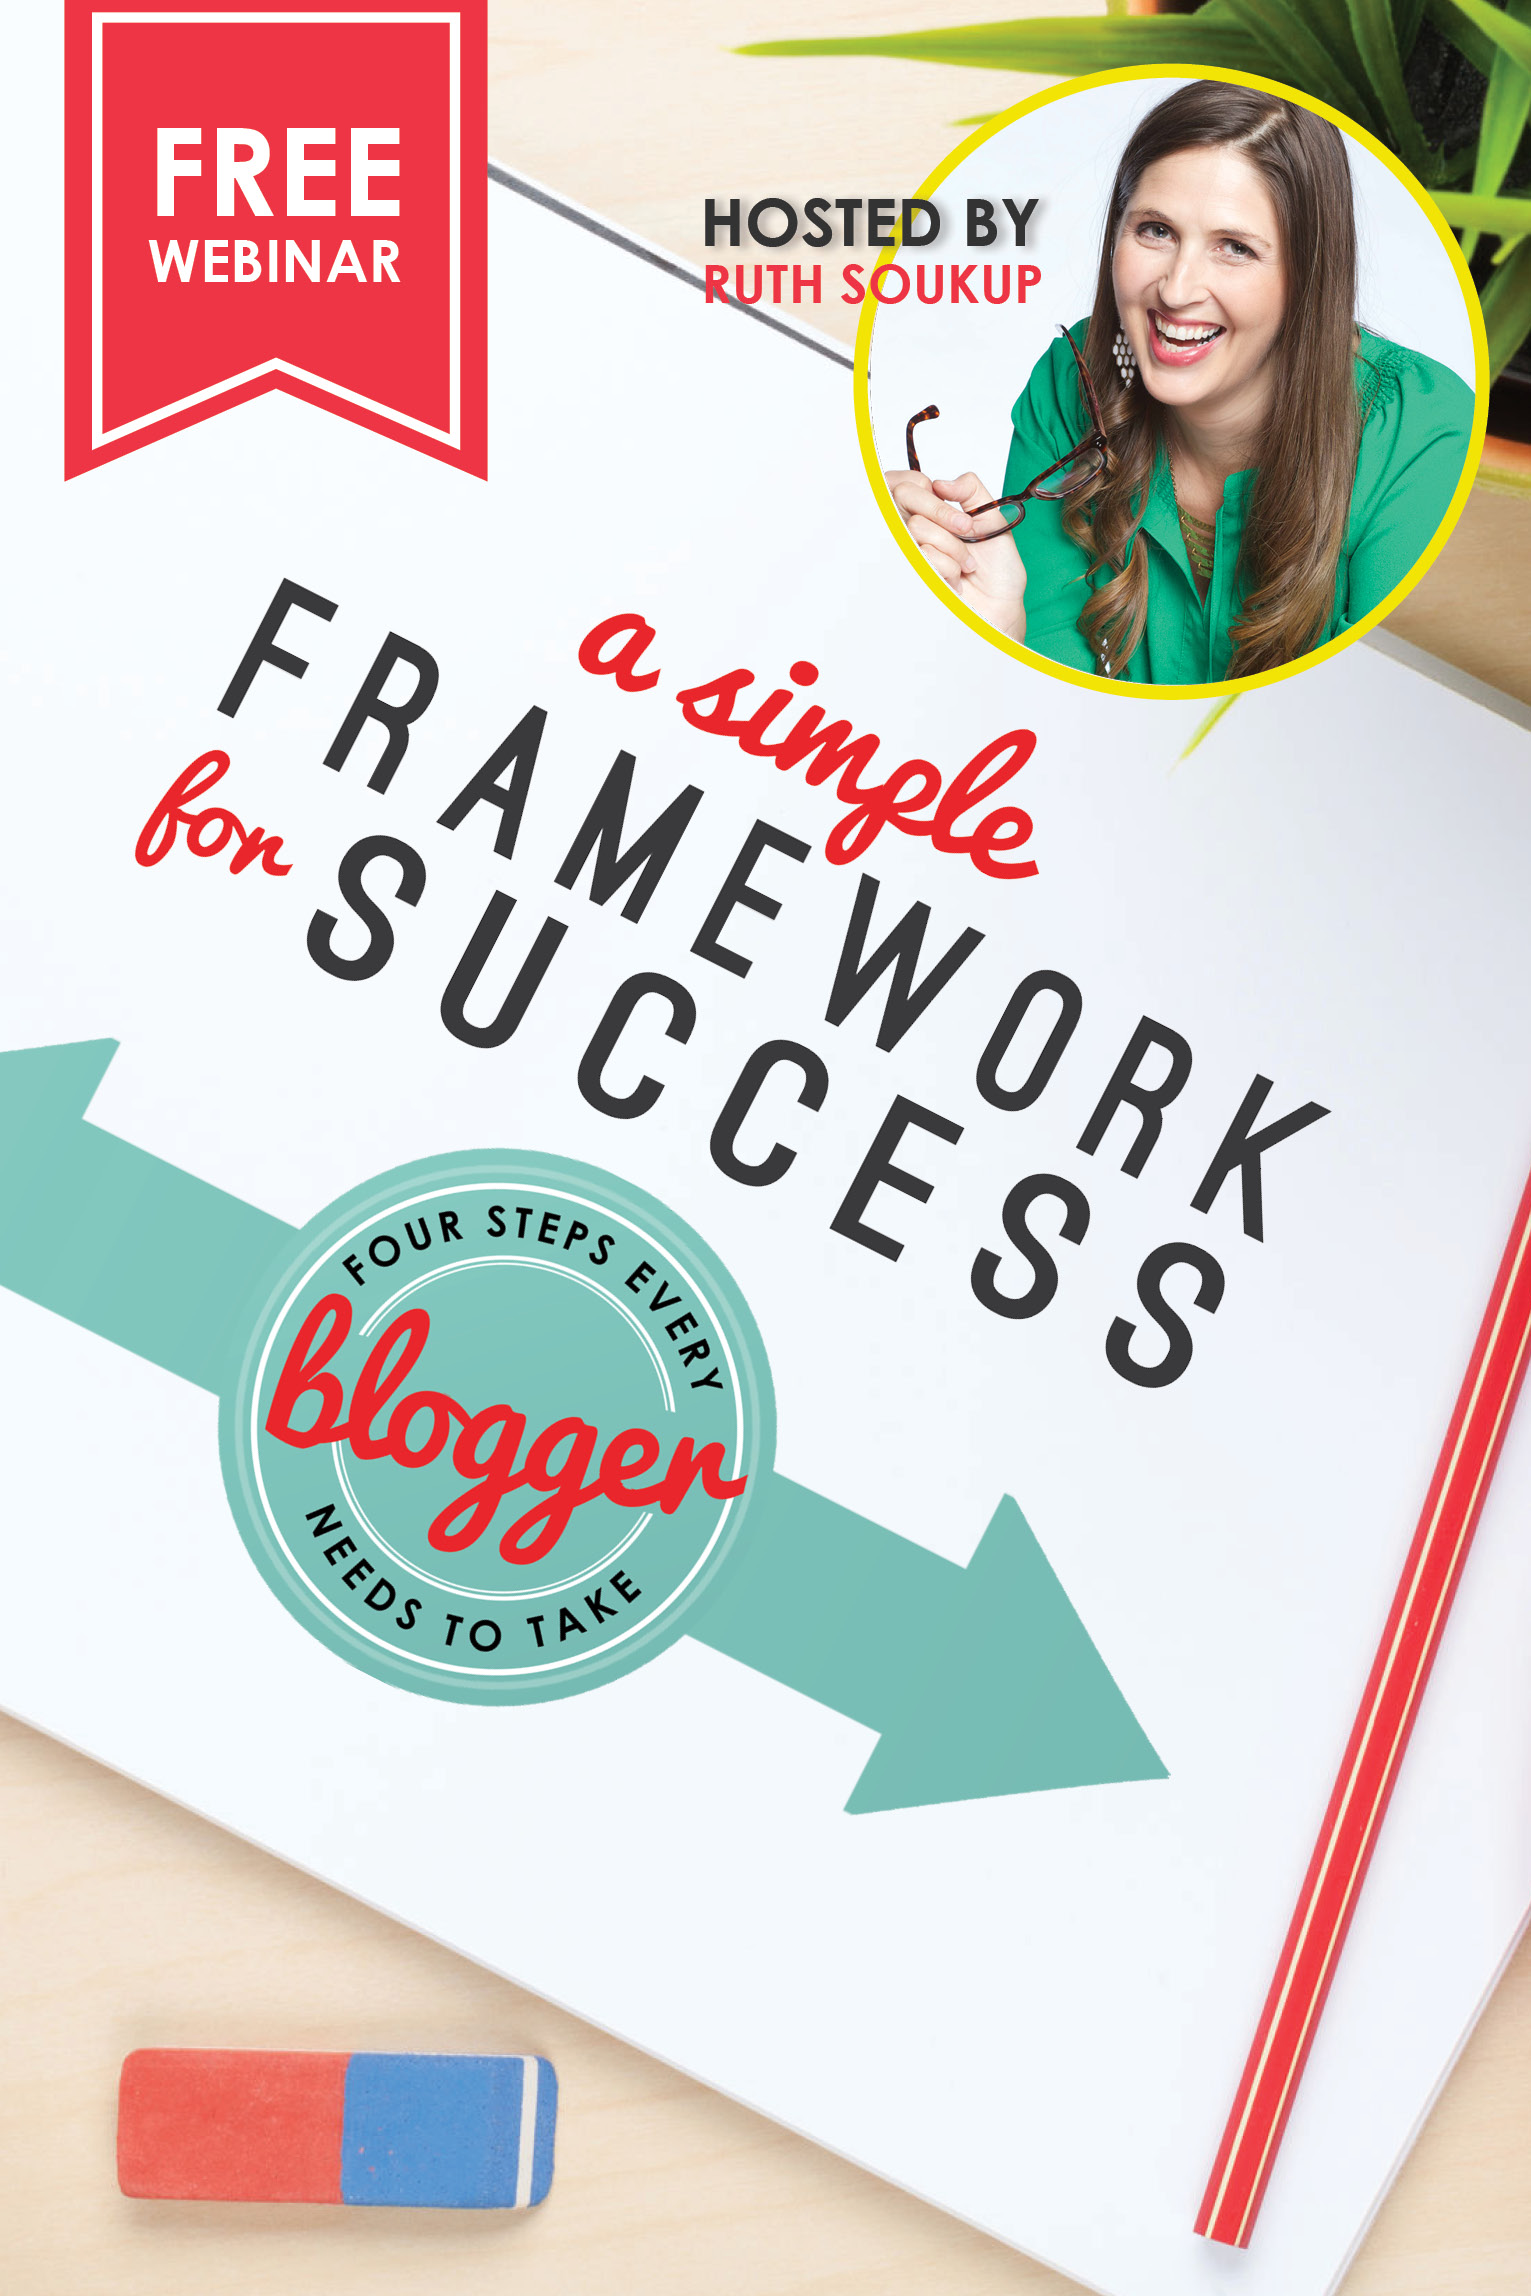 A Simple Framework for Success FREE live blog training webinar by New York Times best-selling author Ruth Soukup is happening on March 8th, 2018. Register to claim your spot now!